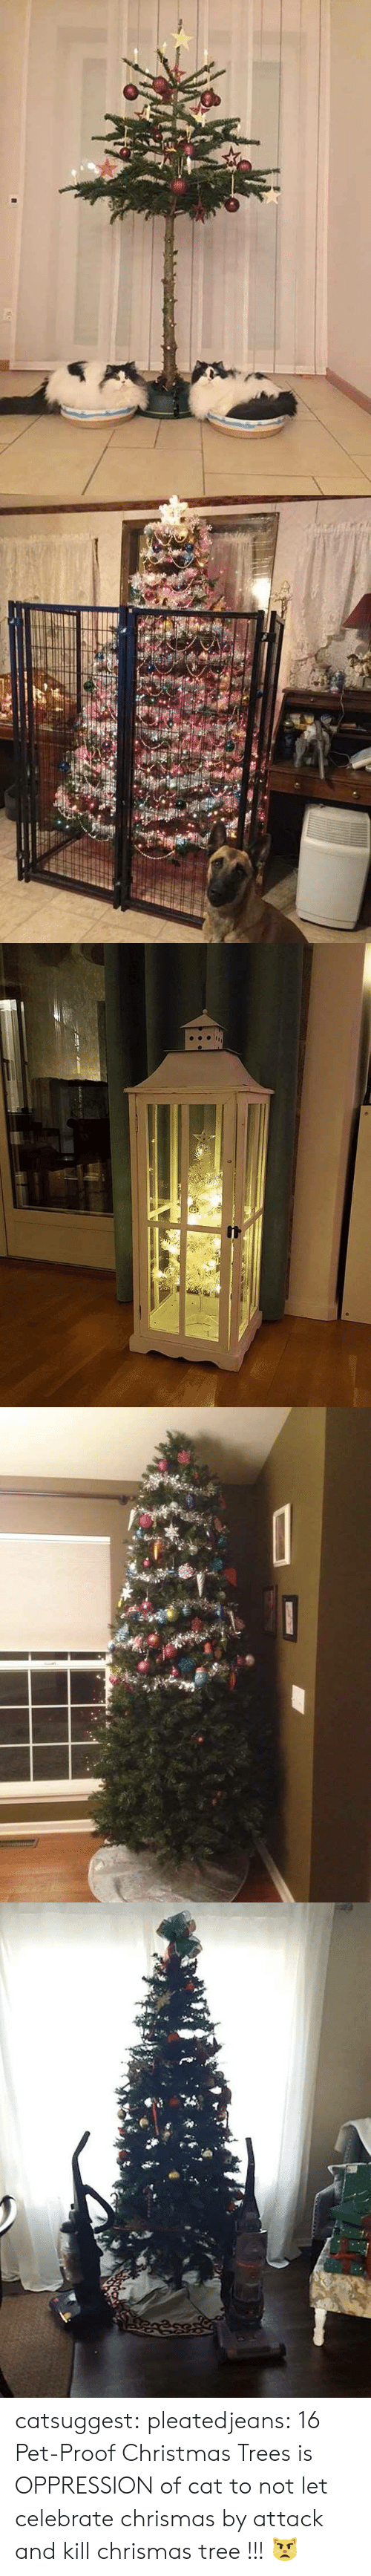 Christmas, Tumblr, and Blog: catsuggest:  pleatedjeans: 16 Pet-Proof Christmas Trees  is OPPRESSION of cat to not let celebrate chrismas by attack and kill chrismas tree !!! 😾